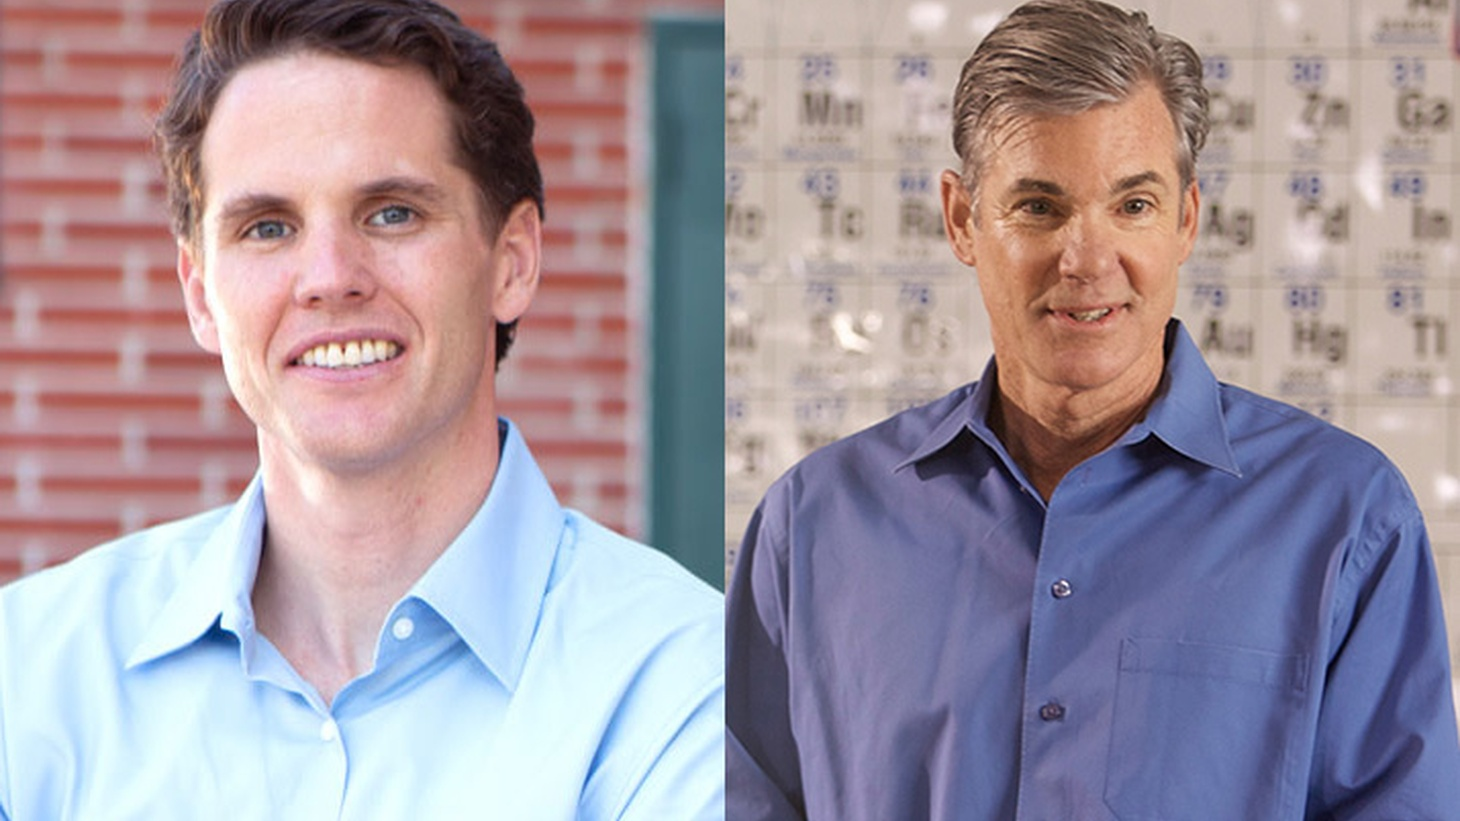 A surprise for California voters: the hottest race in next month's statewide election is for Superintendent of Public Instruction, a nonpartisan office with limited powers. Incumbent Tom Torlakson and challenger Marshall Tuck embody both sides of the national conflict over public education—which has made for a close race.